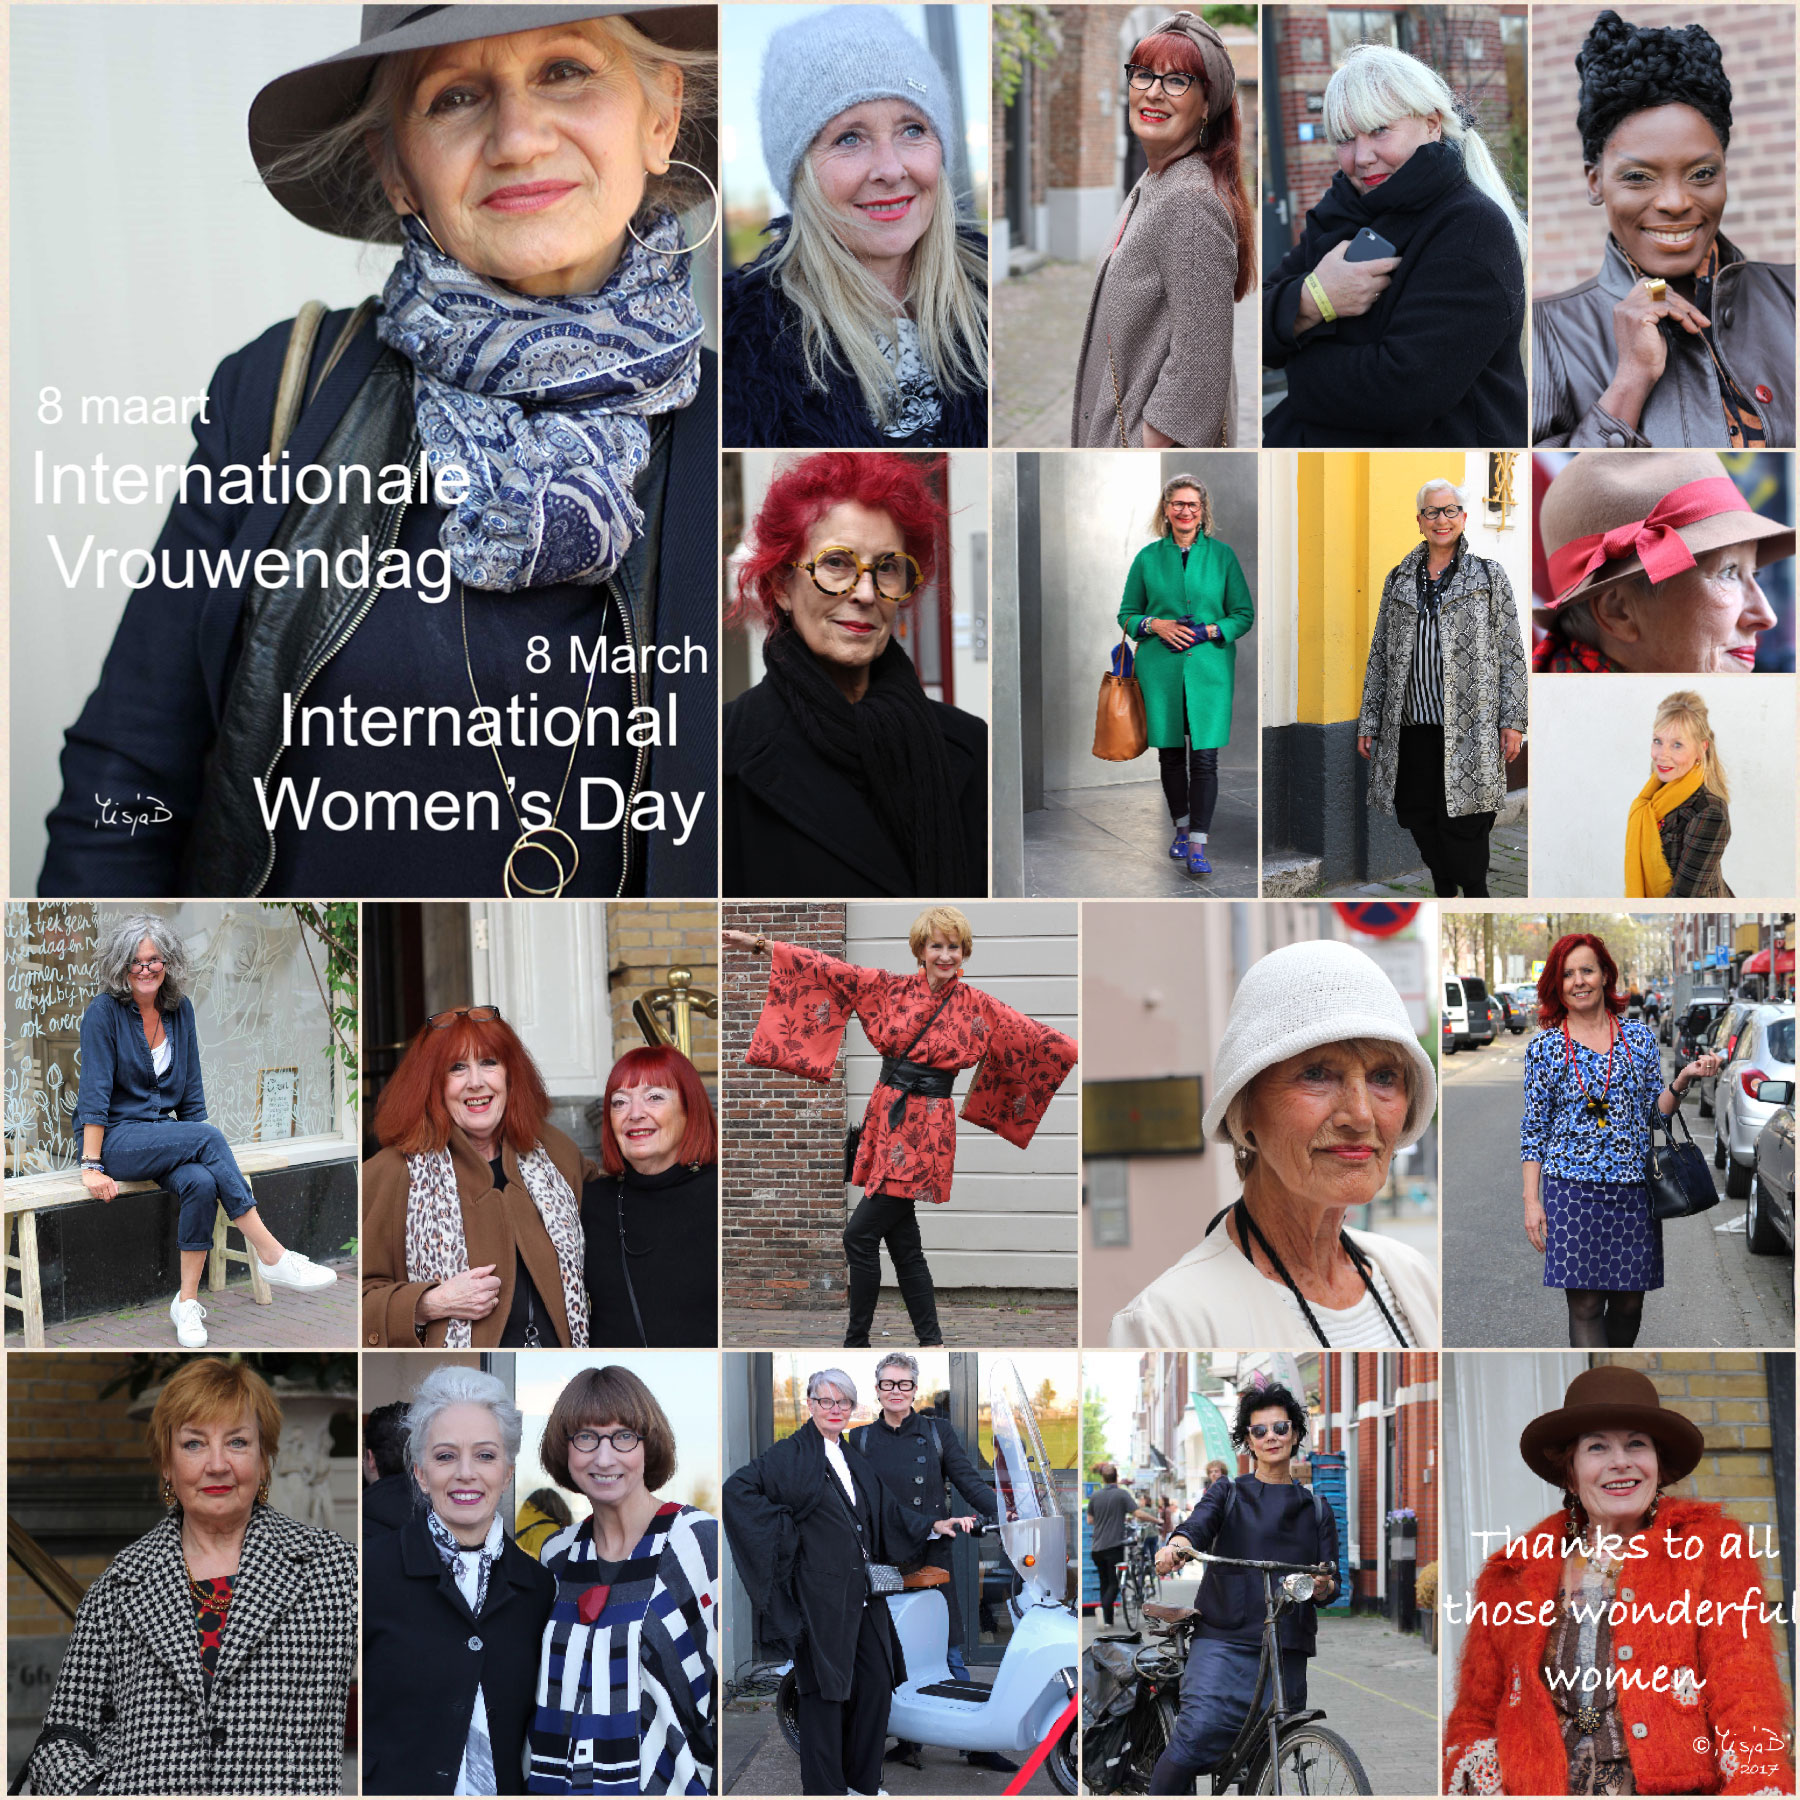 Wednesday, 8 March International Women's Day 2017